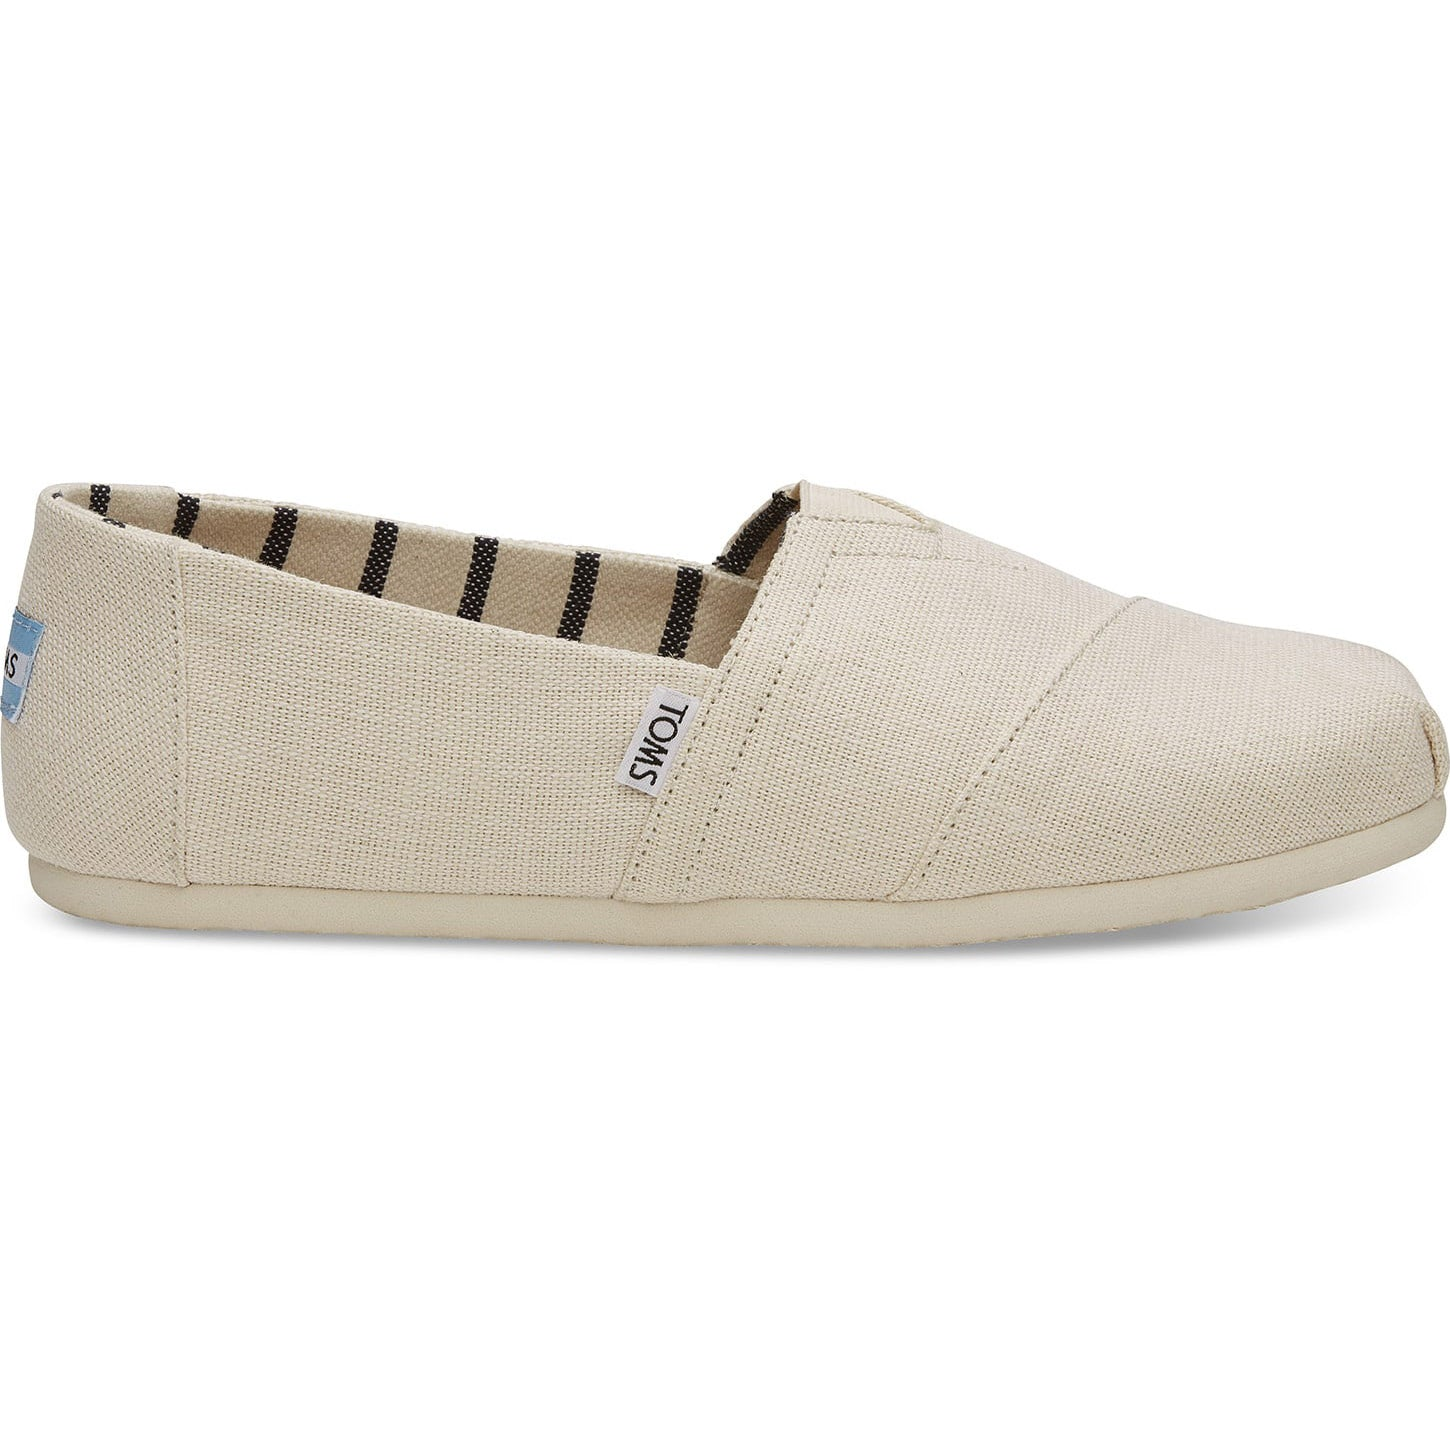 Toms Mens Antique White Heritage Canvas Classics Espadrilles